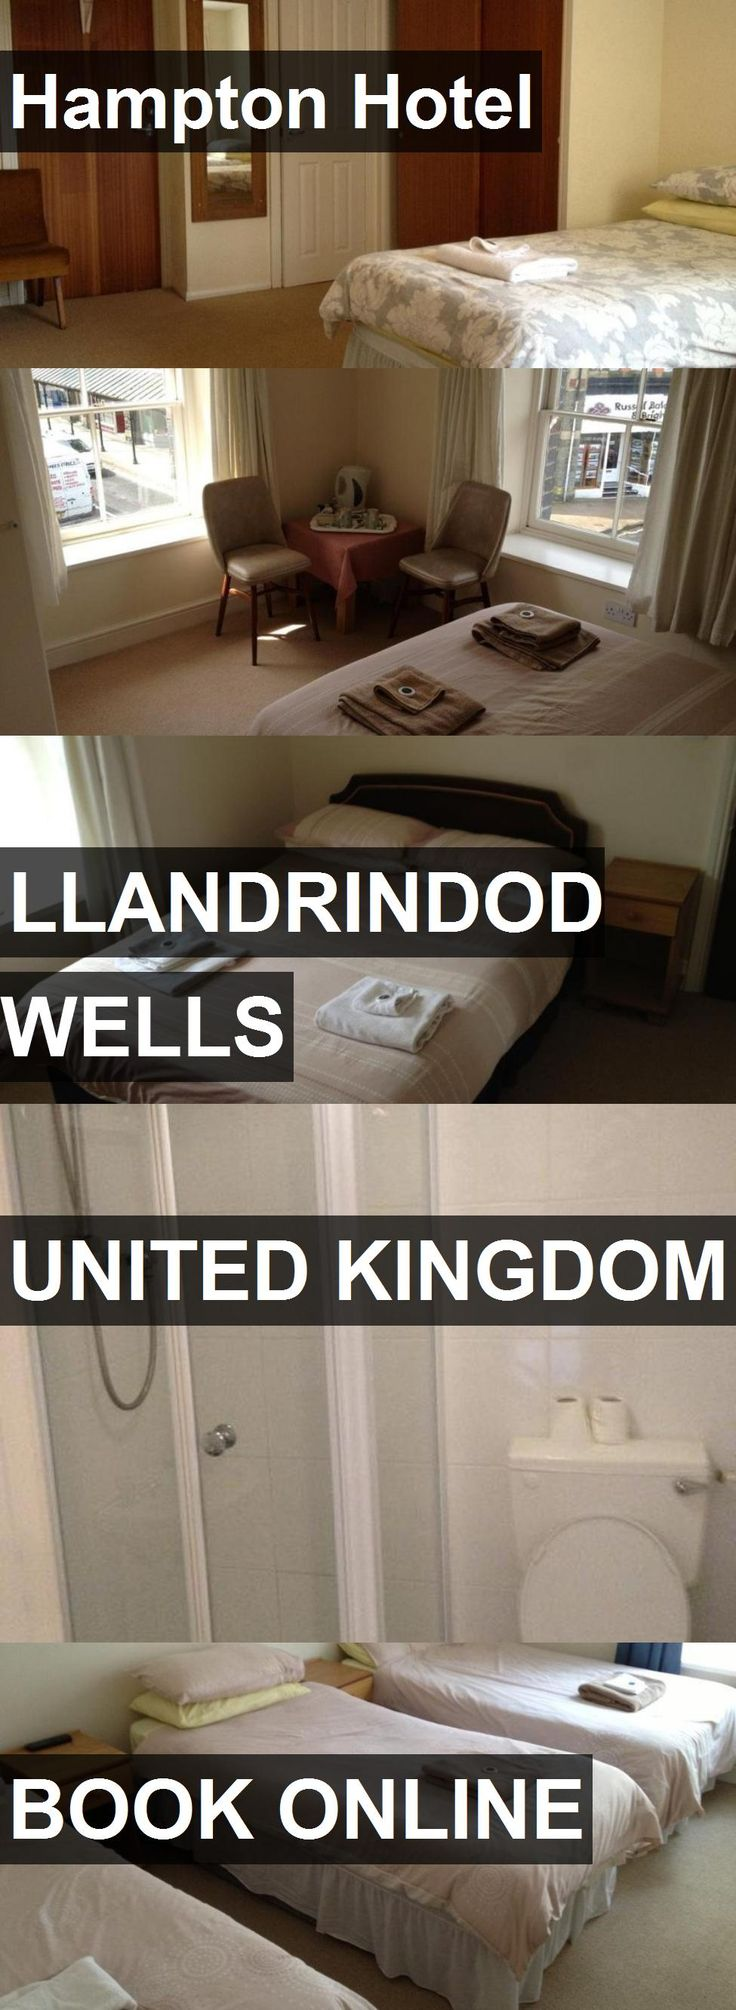 Hotel Hampton Hotel in Llandrindod Wells, United Kingdom. For more information, photos, reviews and best prices please follow the link. #UnitedKingdom #LlandrindodWells #HamptonHotel #hotel #travel #vacation